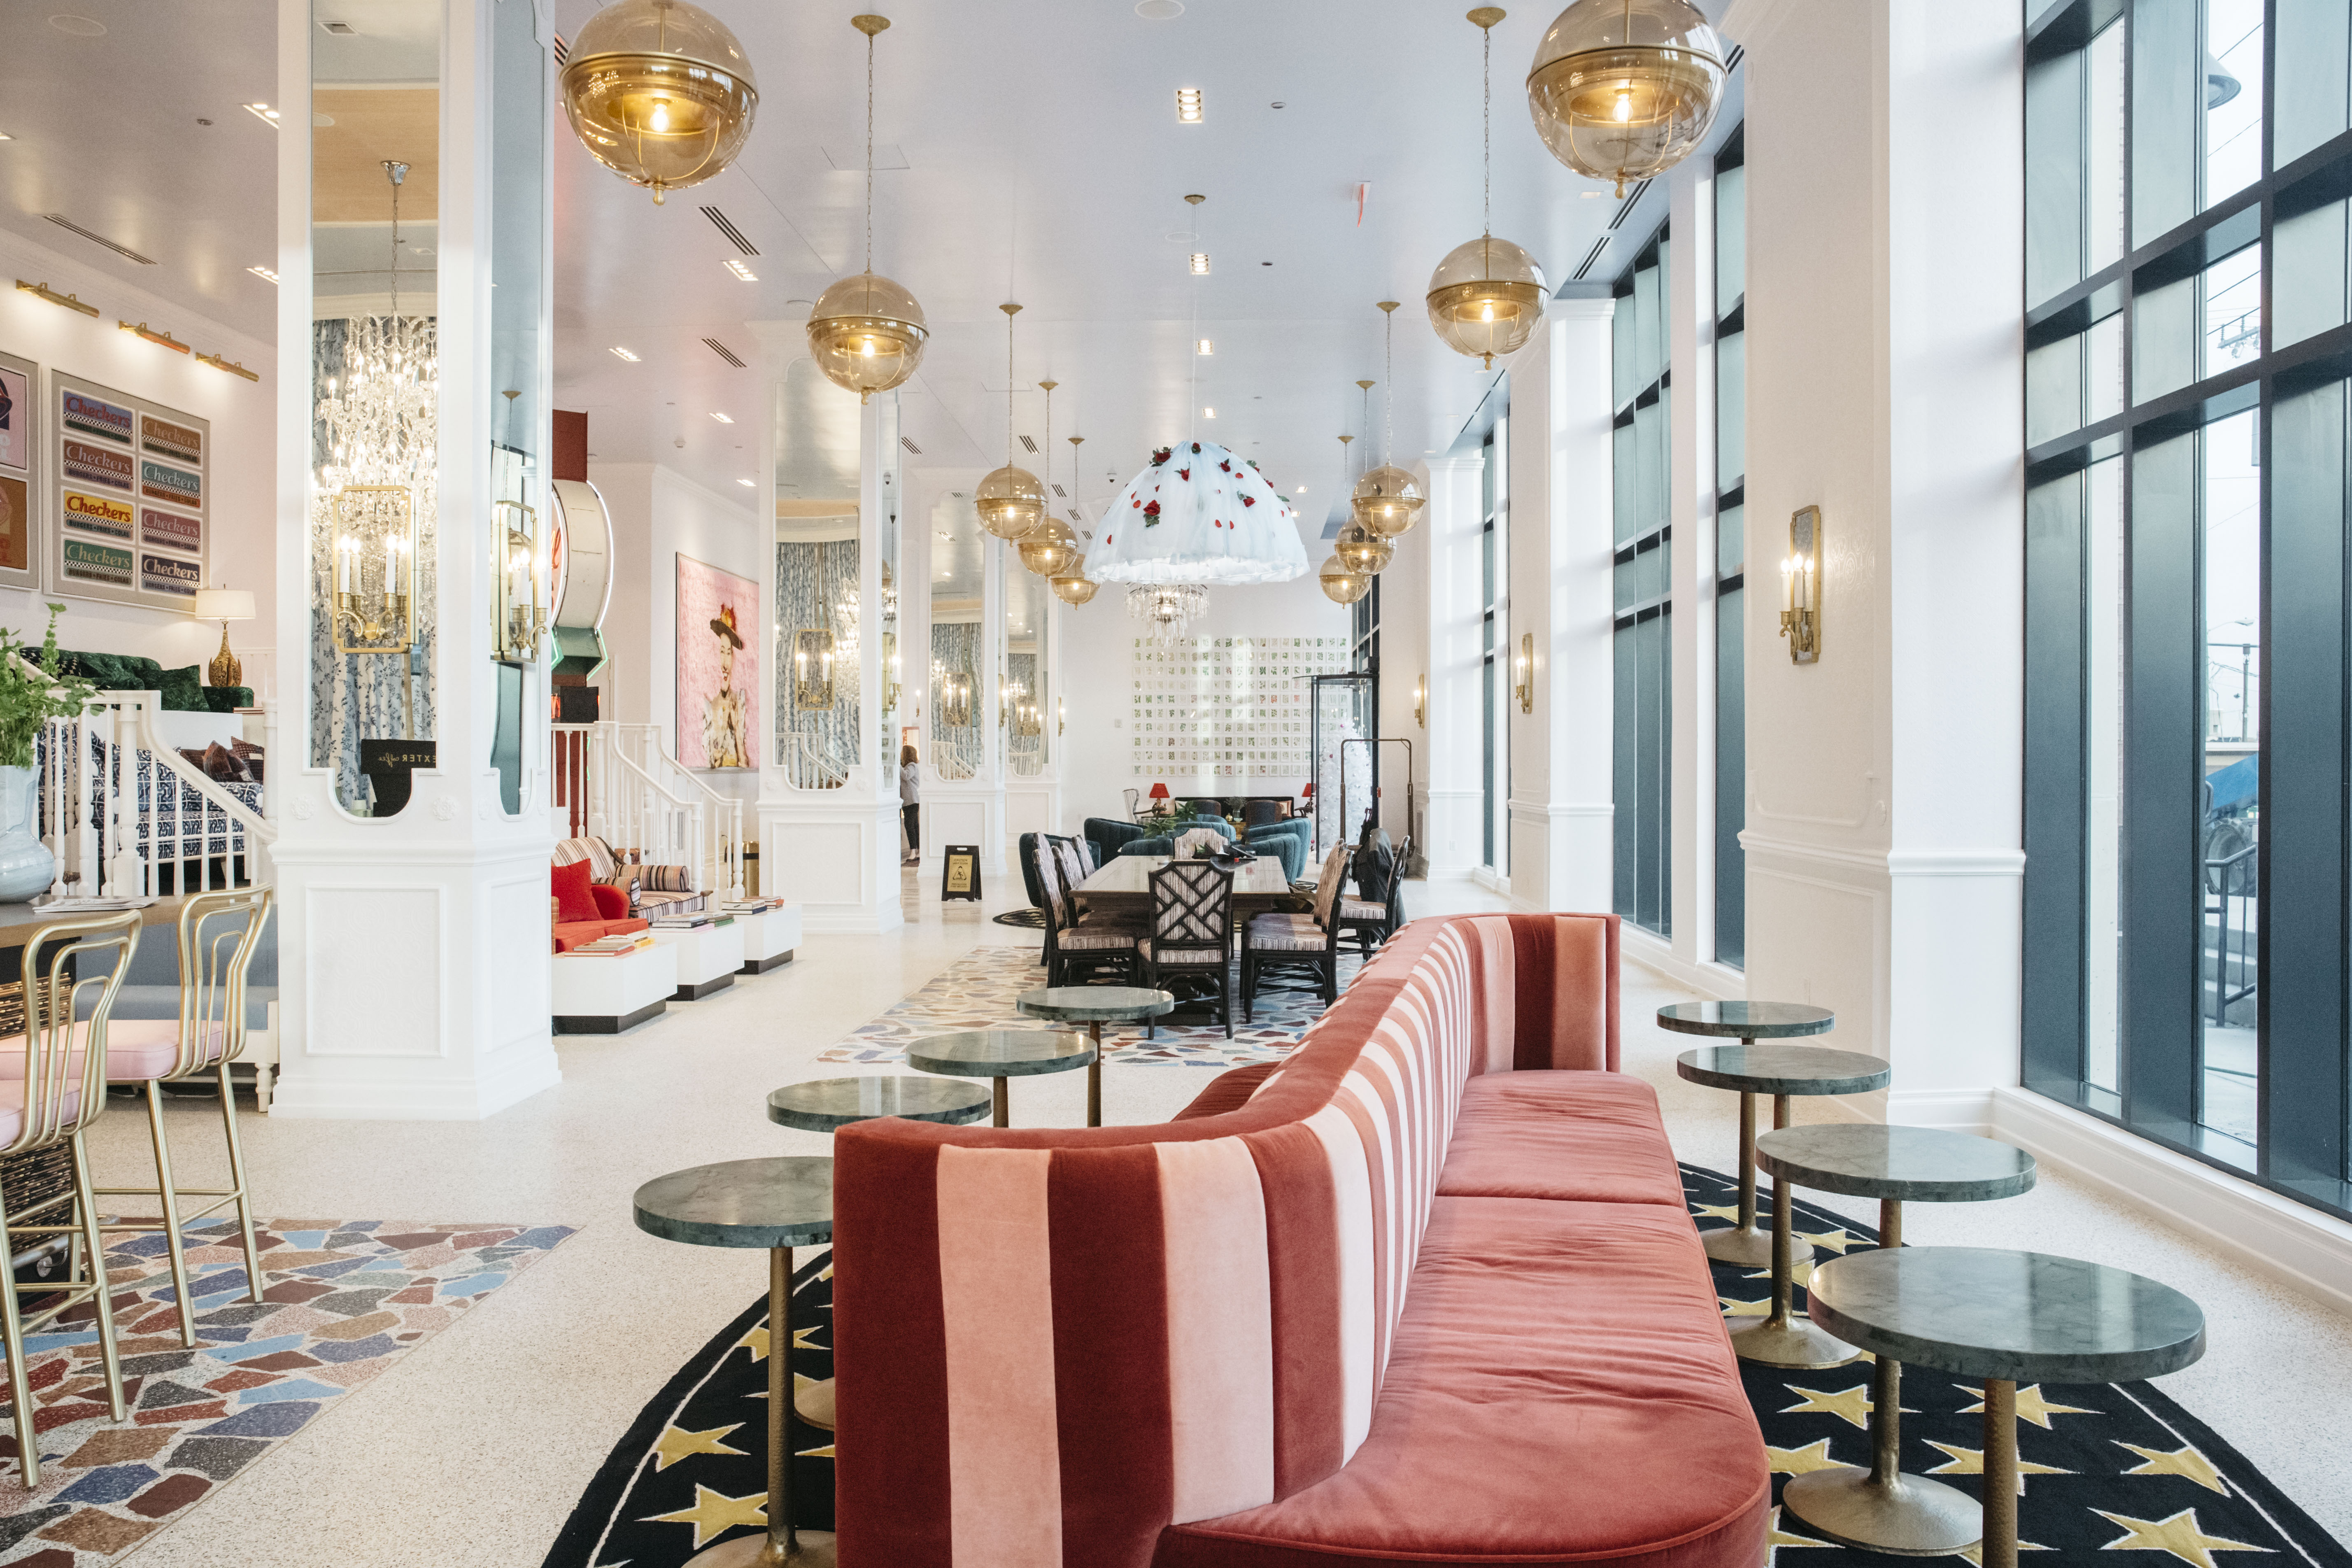 Grandma-Chic and Glorious, Graduate Is One of Nashville's Most Visually Interesting Hotels